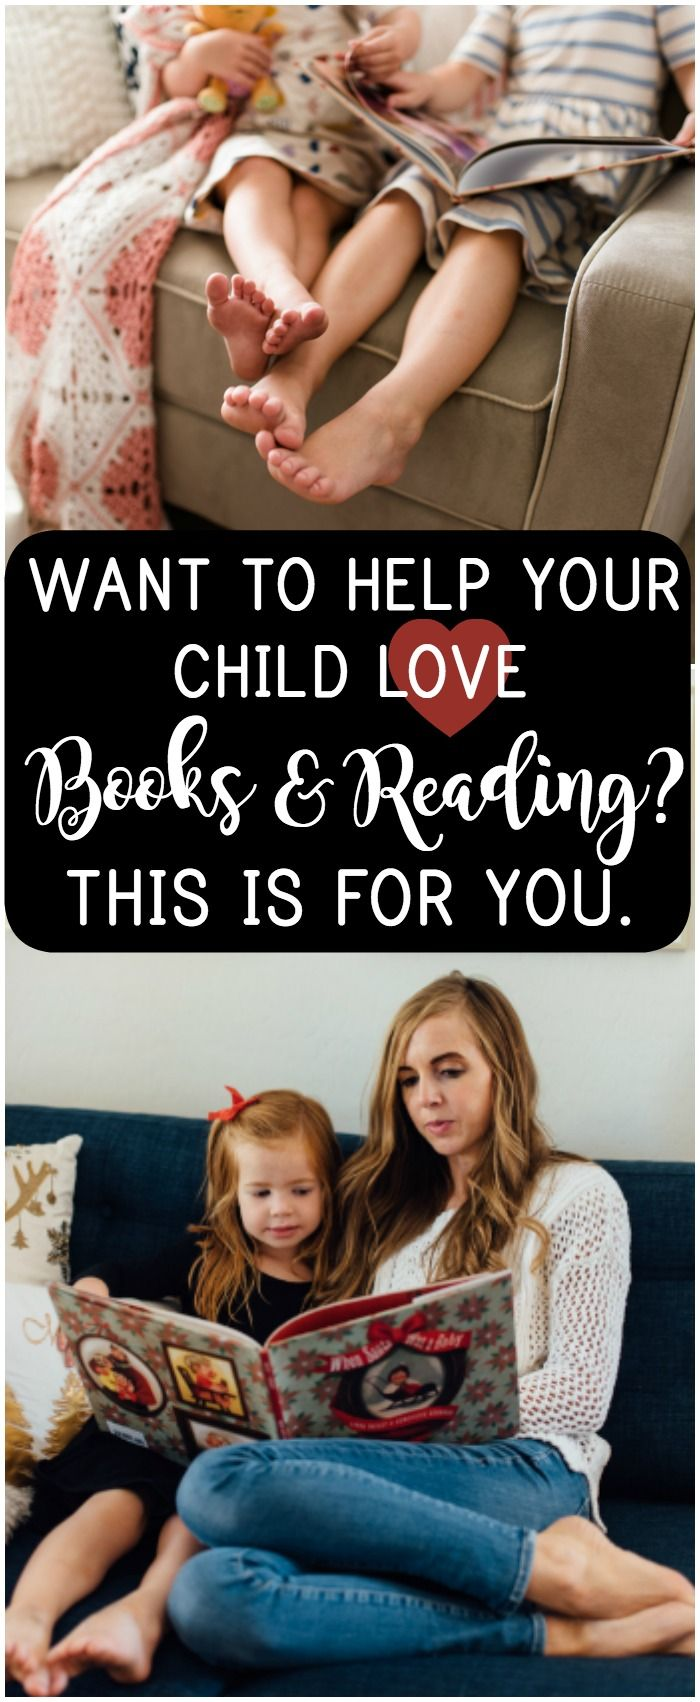 Reading with your kids is one of the most valuable things you can do for both of you! Subscribe for this FREE Raising Readers online class to receive tons of suggestions on how to get them to fall head over heels for books.